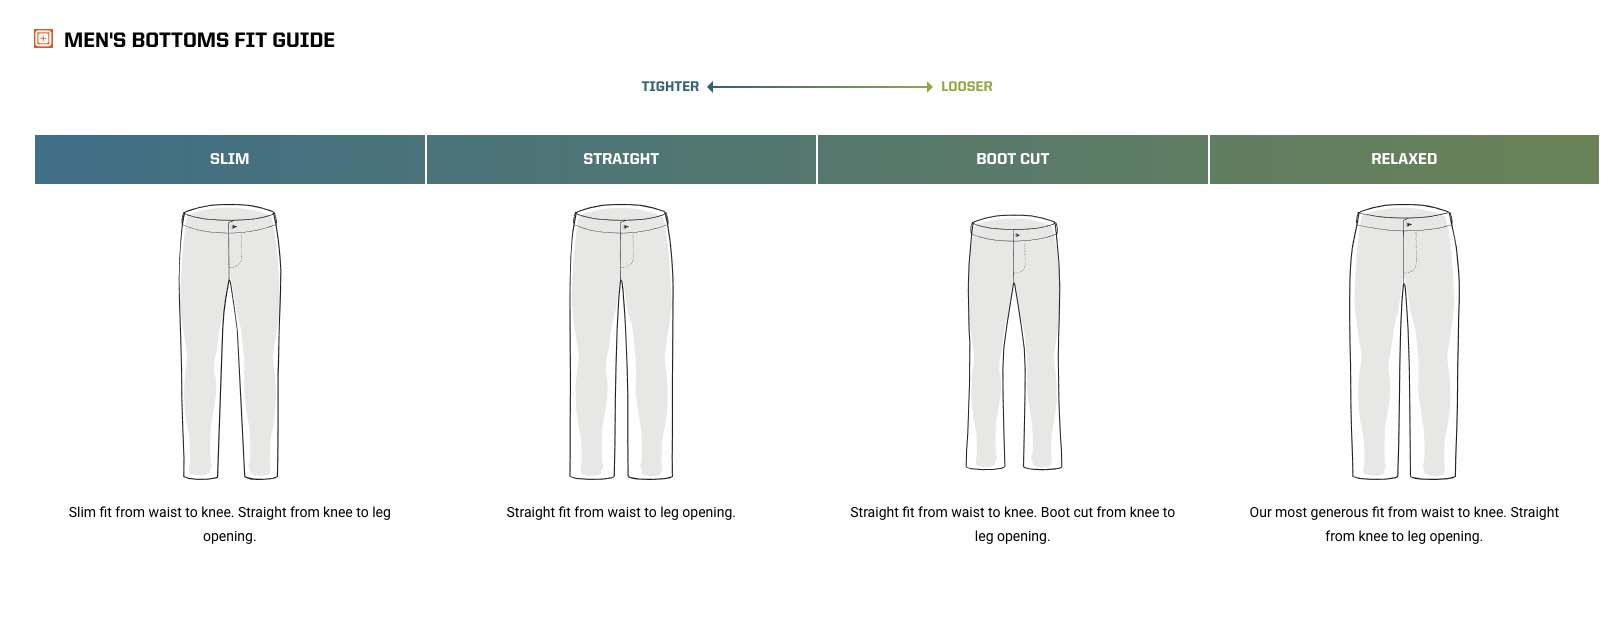 5.11-tactical-mens-bottoms-fit-guide.jpg